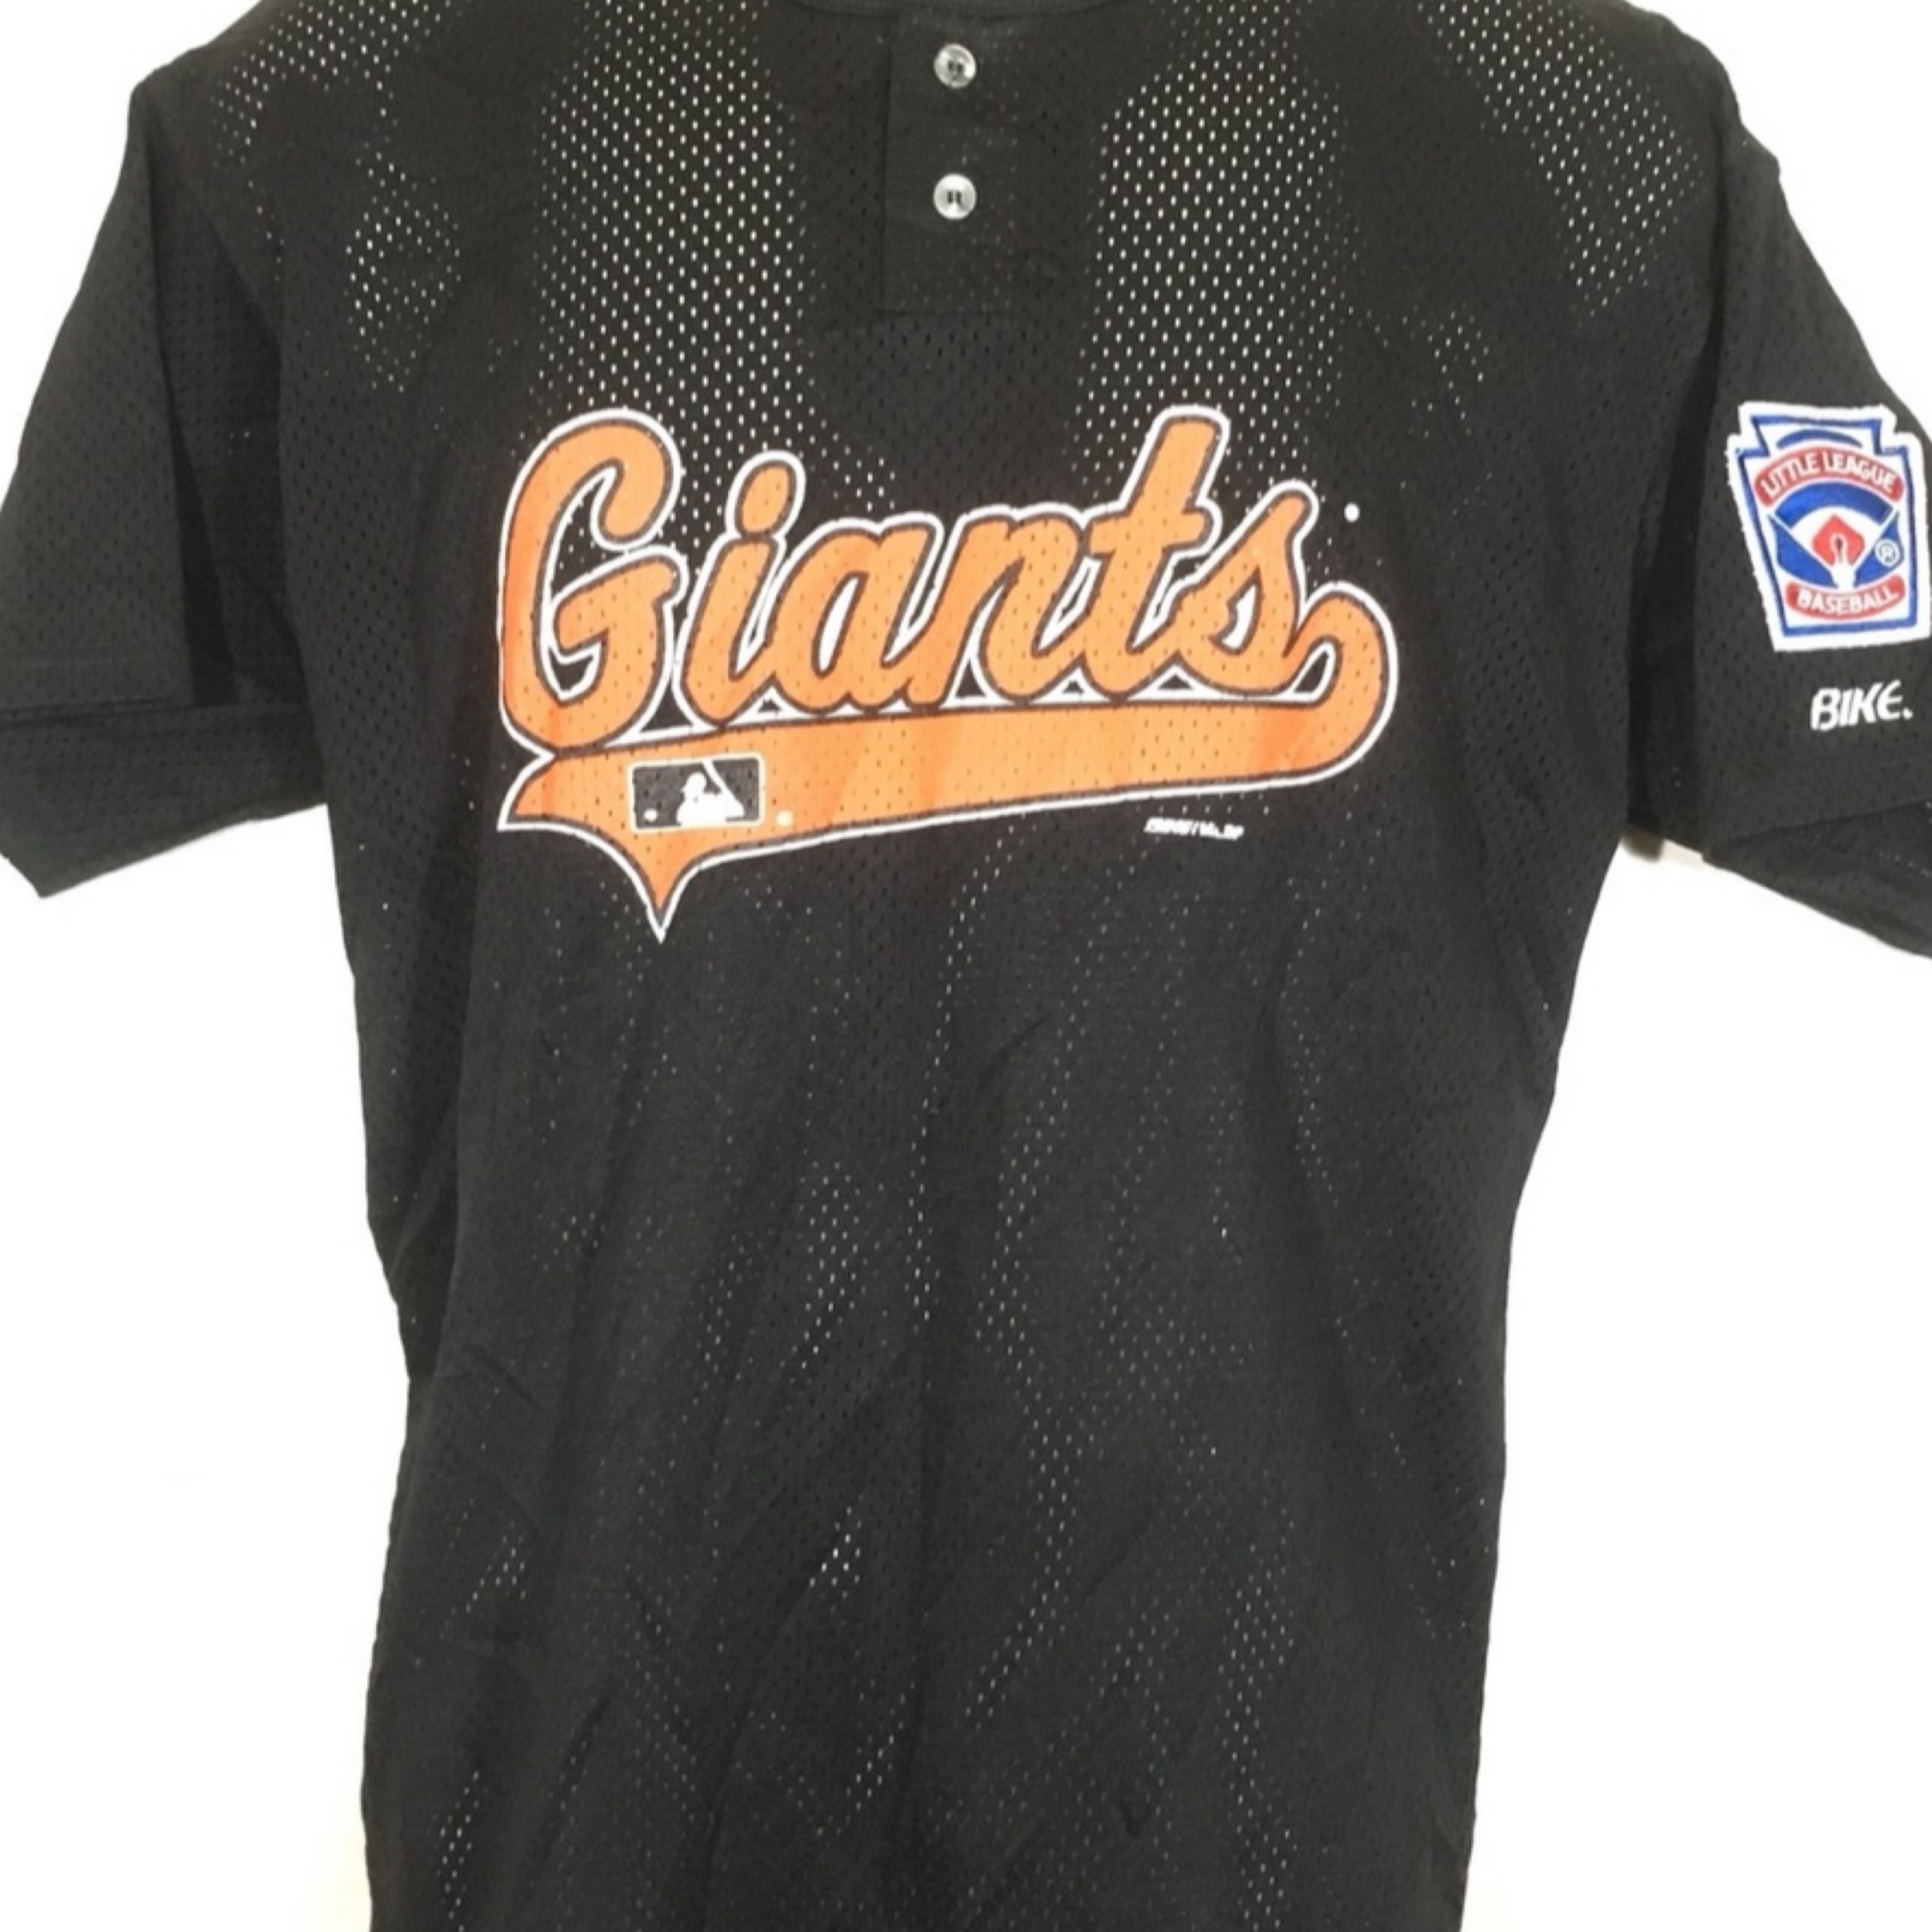 the best attitude e1bc6 993df New York Giants Vintage Baseball Shirt